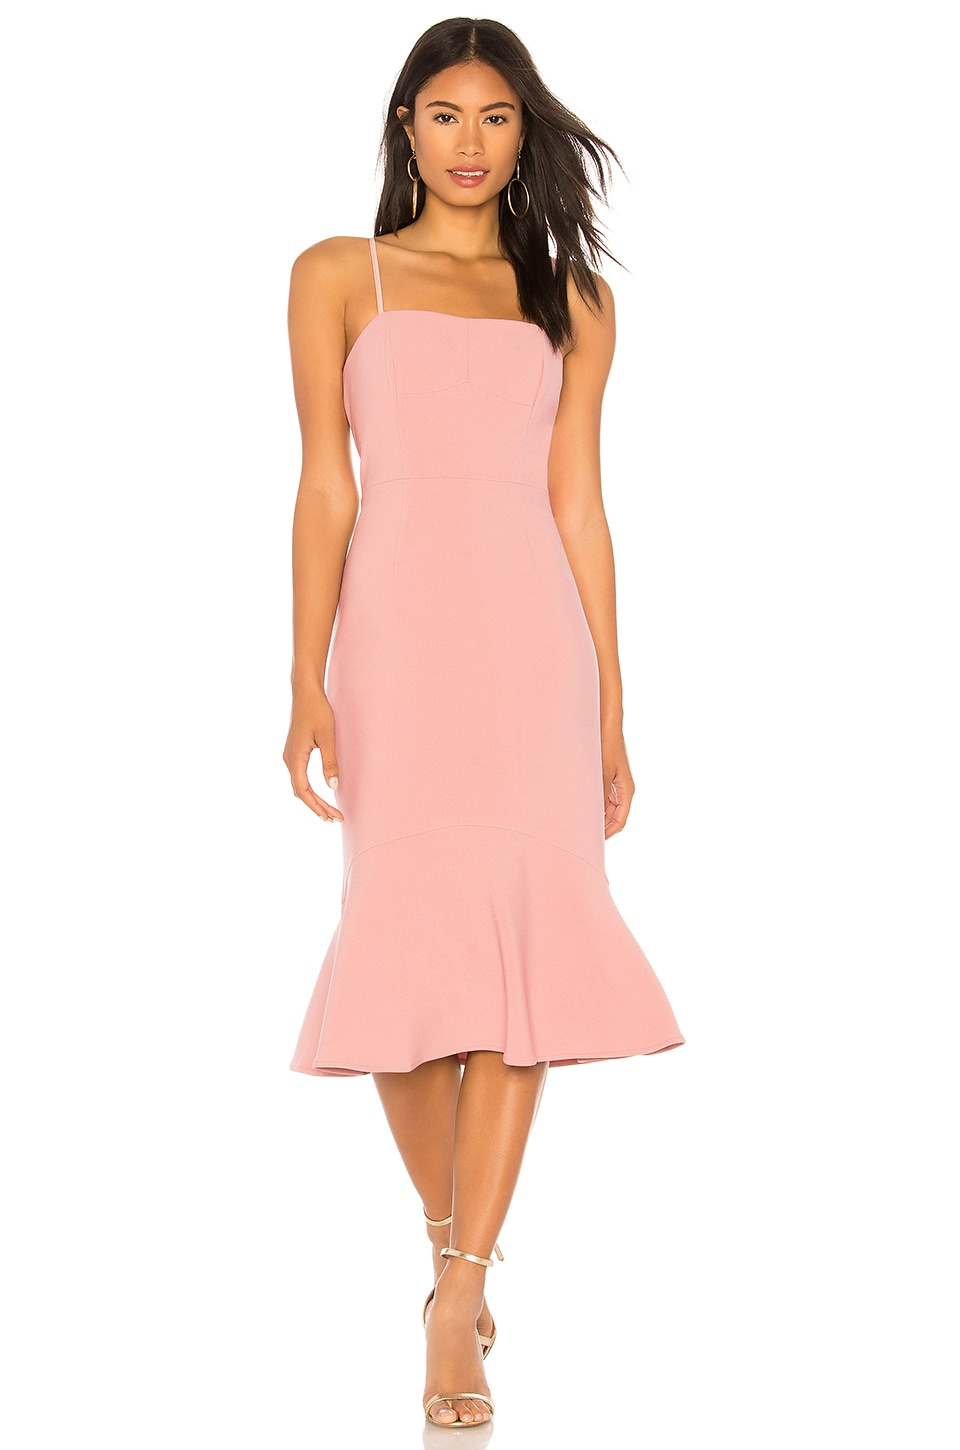 Finders Keepers Continuum Midi Dress in Pink Dust